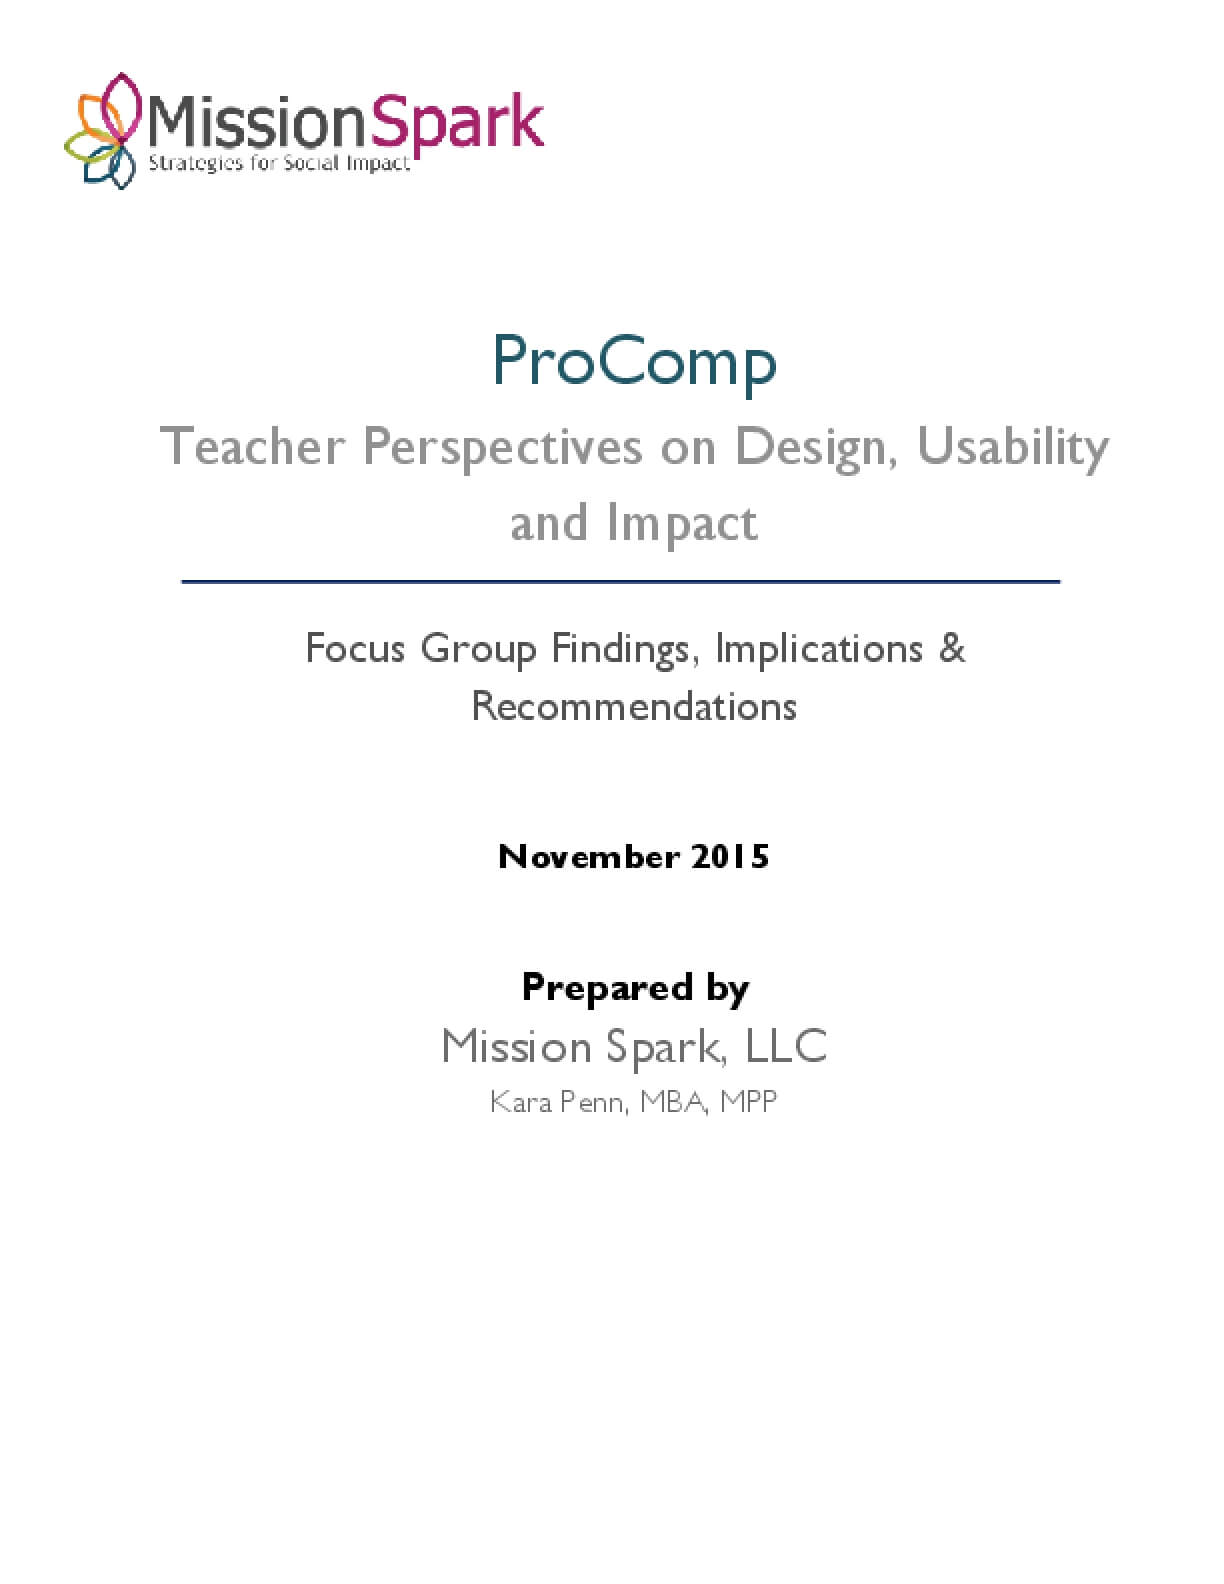 ProComp Teacher Perspectives on Deisng, Usability, and Impact: Focus Group Findings, Implications & Reccomendations